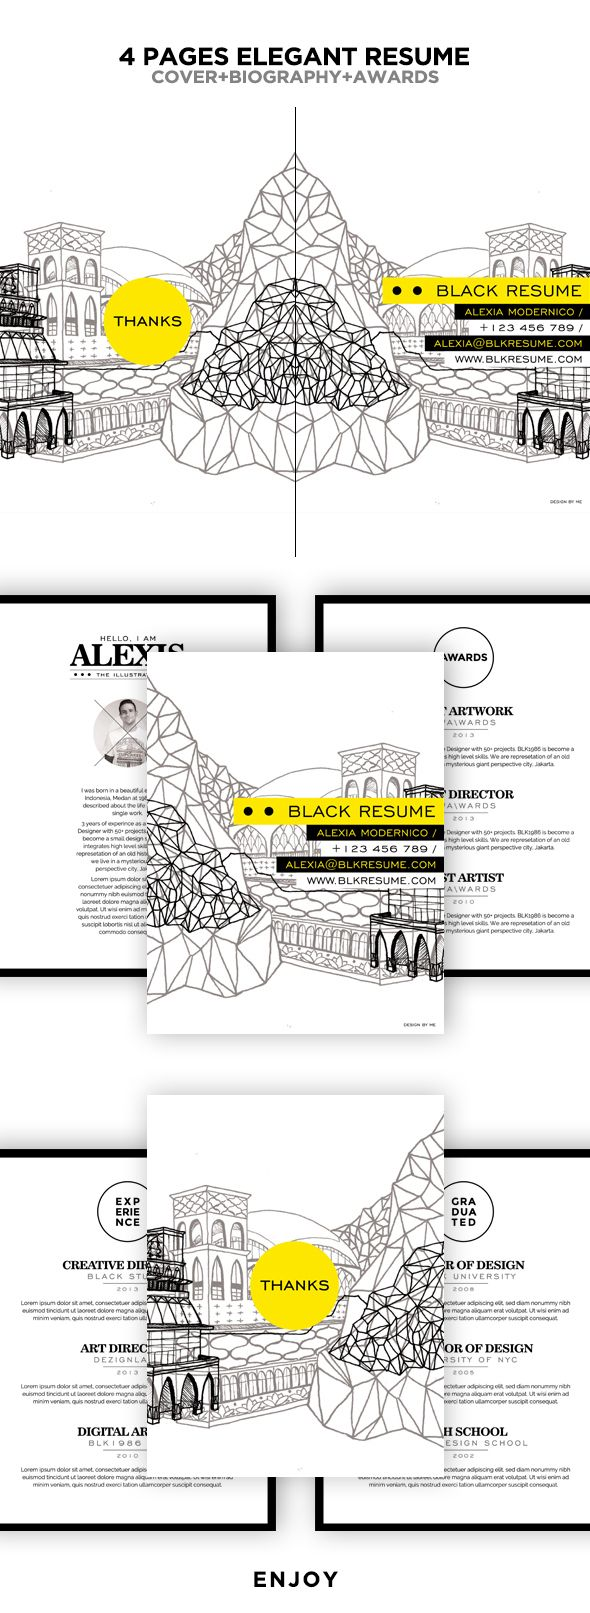 I love 4 panel tabloid resumes, although they are less common, I think they are a great presentation format! Here is a great example!   Black Elegant Resume Booklet by Firman Suci Ananda, via Behance